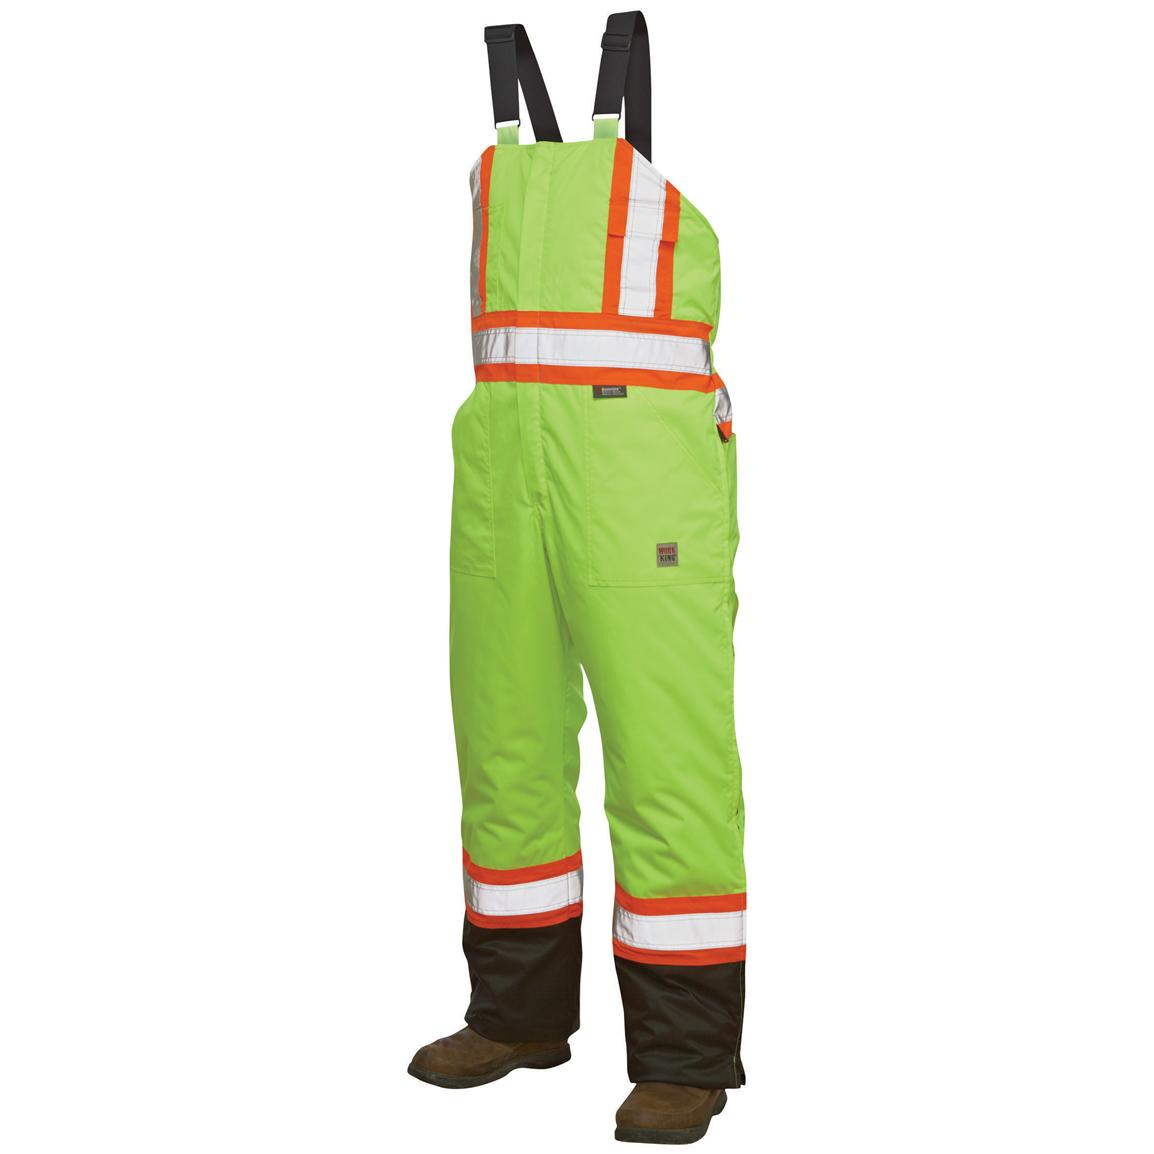 Work King Safety Hi-Vis Insulated Bib Overalls, Fluorescent Green